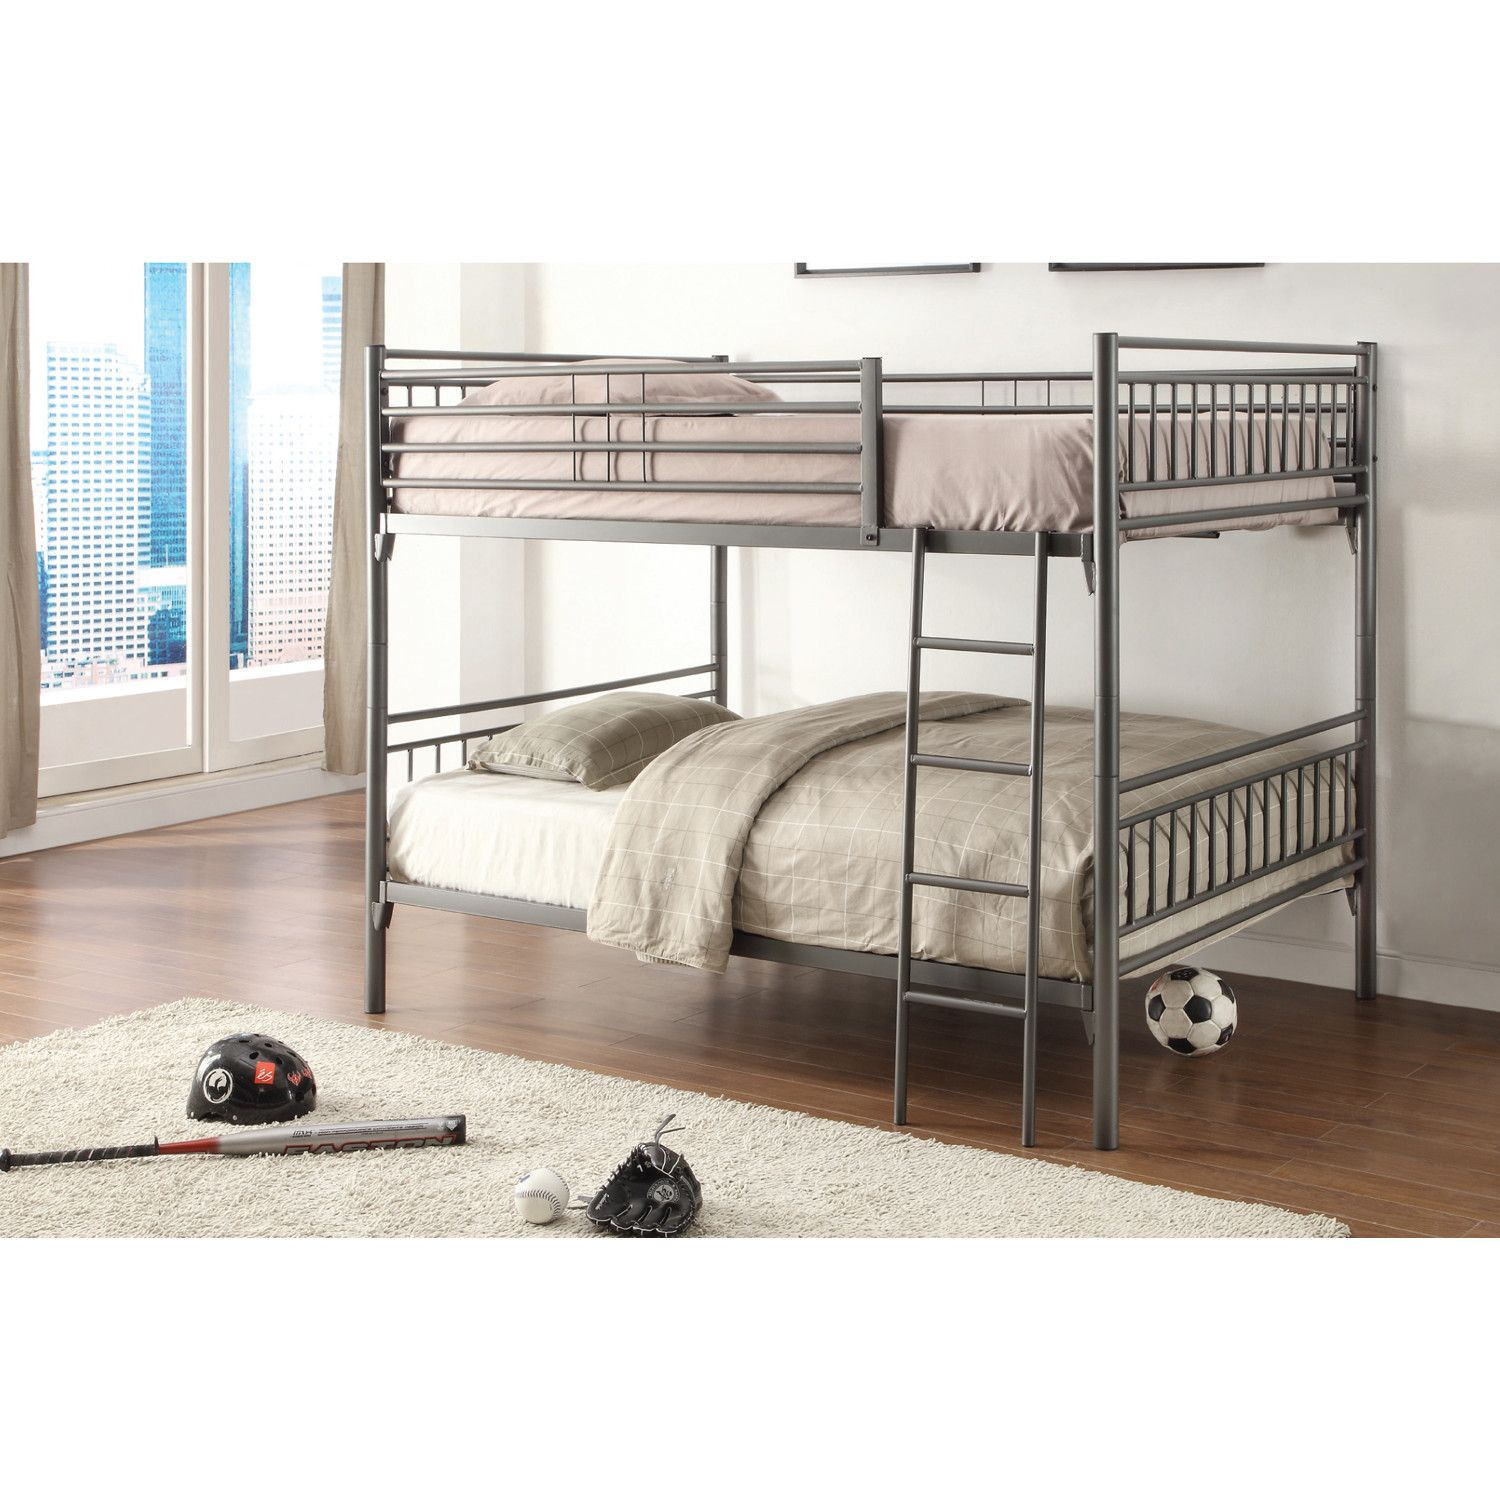 Loft bed with desk queen  Youull love the Full Over Full Bunk Bed at Wayfair  Great Deals on